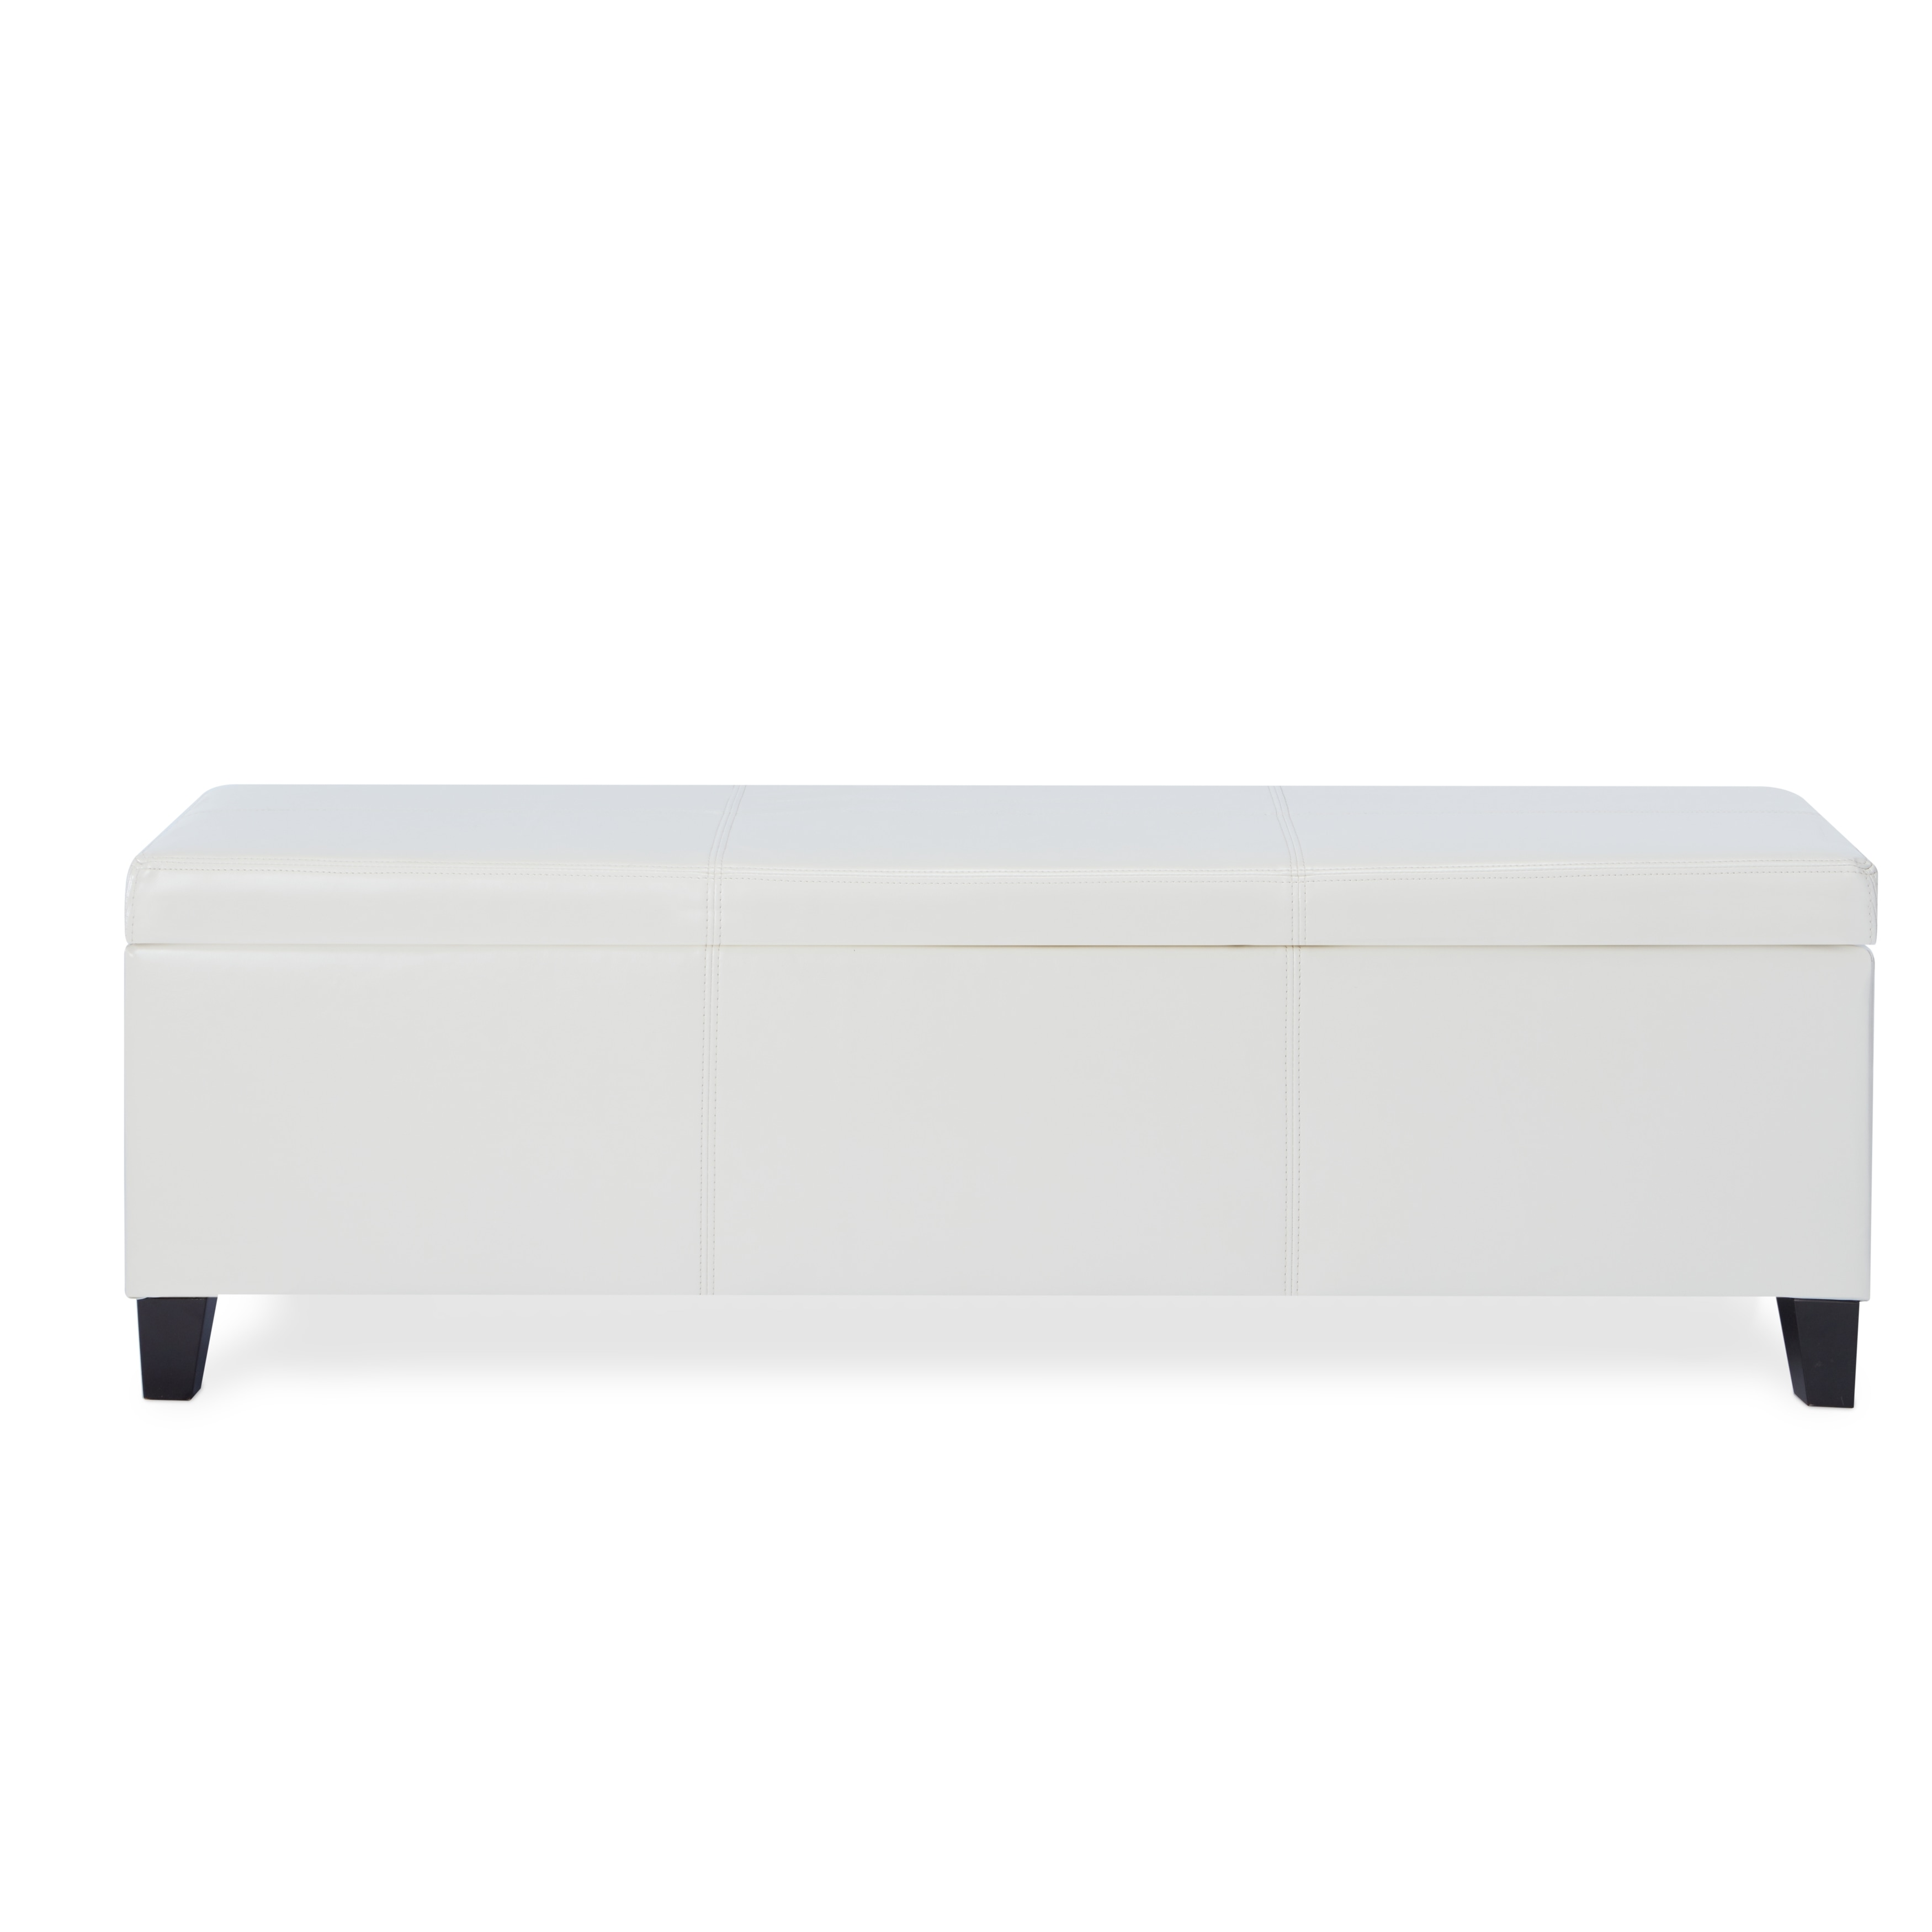 with bench leather furniture mesmerizing storage fabric or seat black outdoor awesome wooden amazing benches cushion indoor for